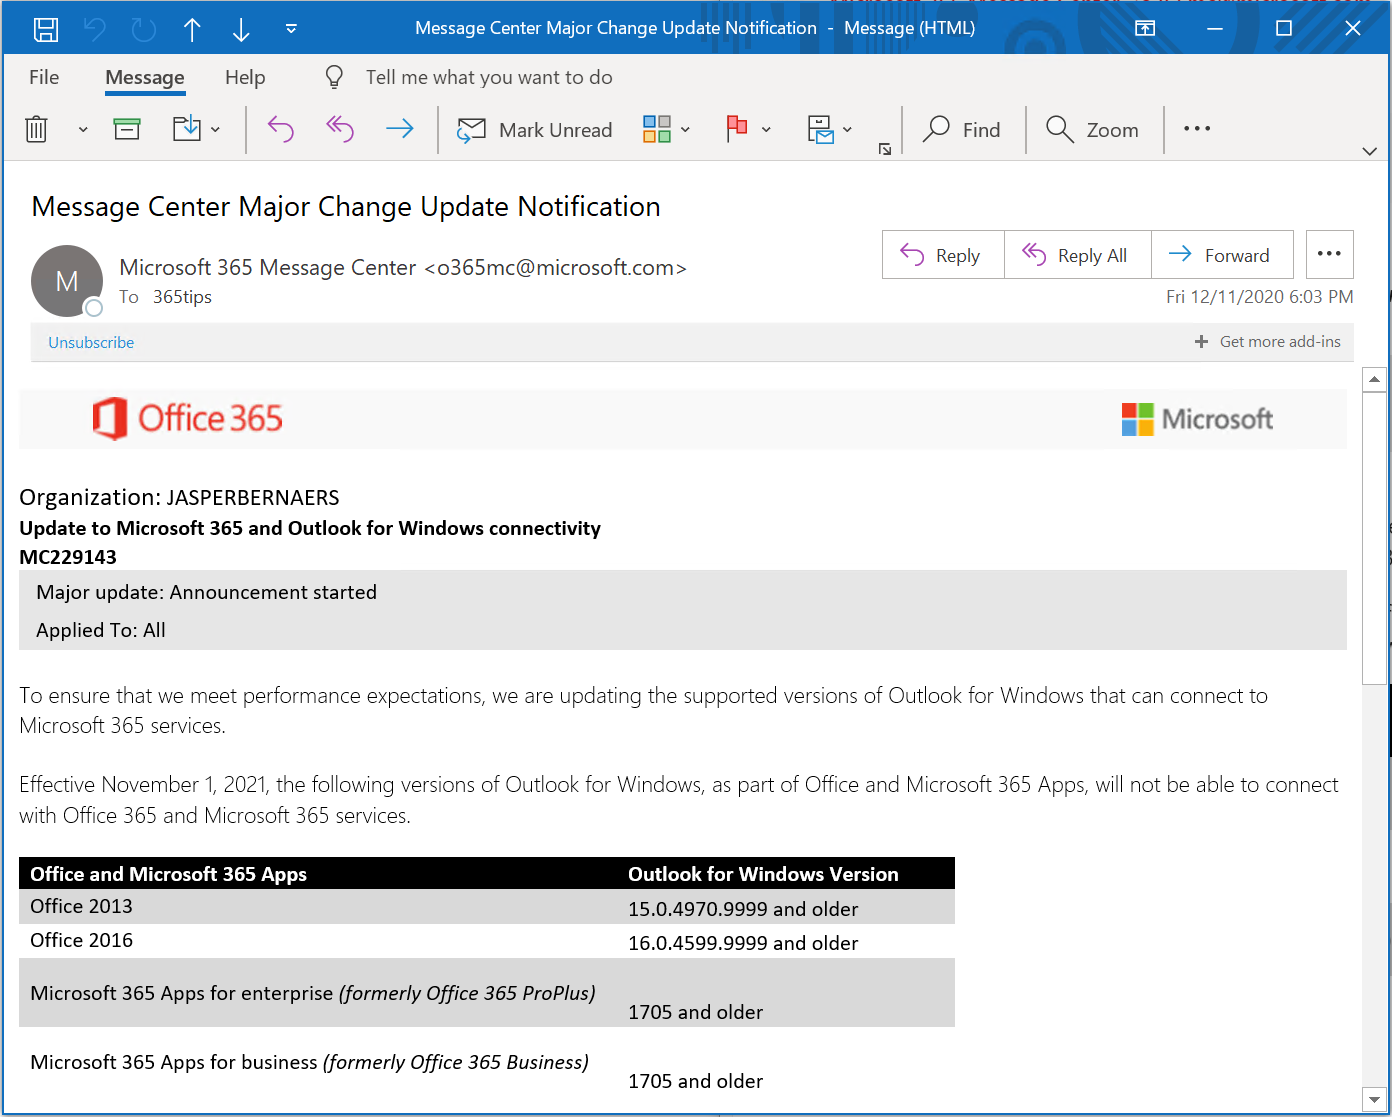 Outlook Connectiviteit Update voor Office 2013 en 2016 – EXO MC229143